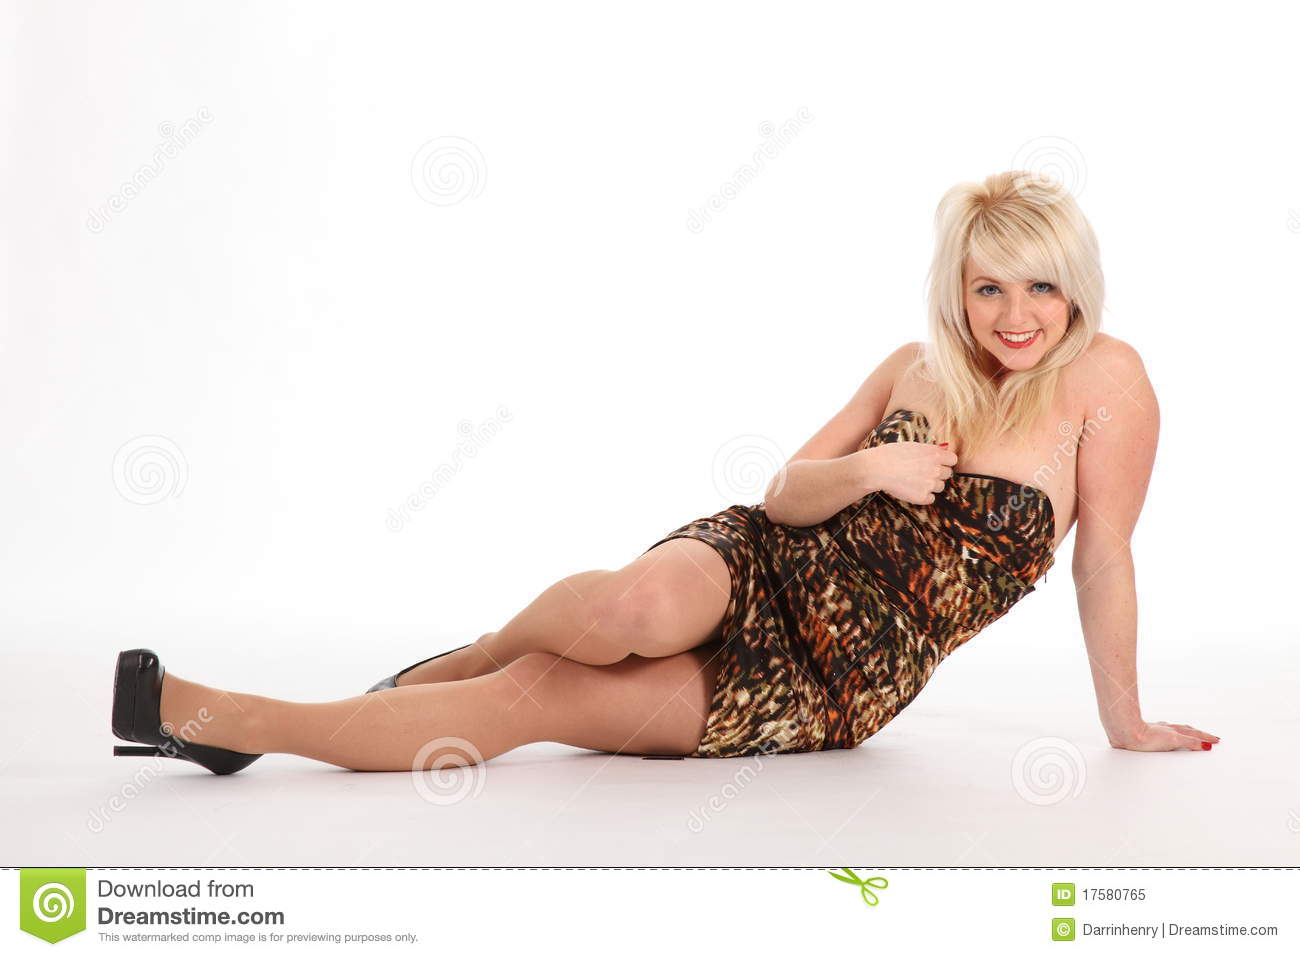 cd433aef6d2 Cheerful, young blonde woman, sitting on the floor. Girl wearing short  patterned dress and high heels. Full body shot on white back drop.